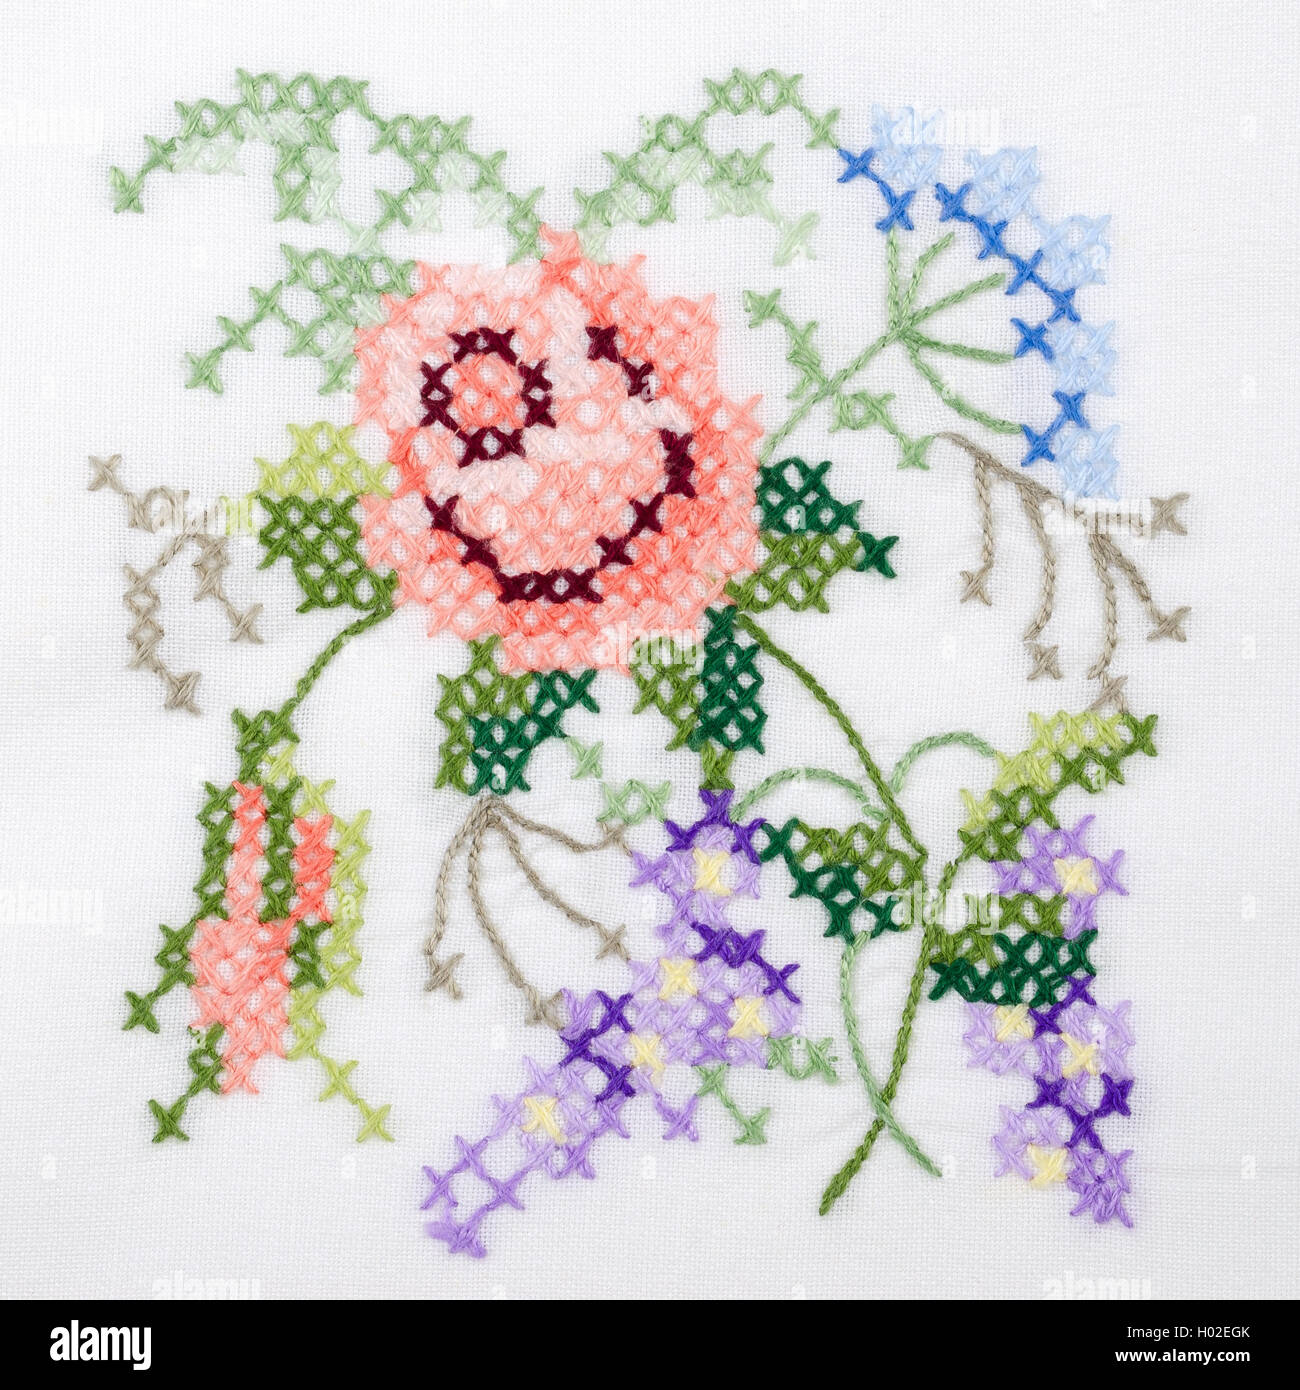 Embroidery Flowers Hand Stock Photos Embroidery Flowers Hand Stock